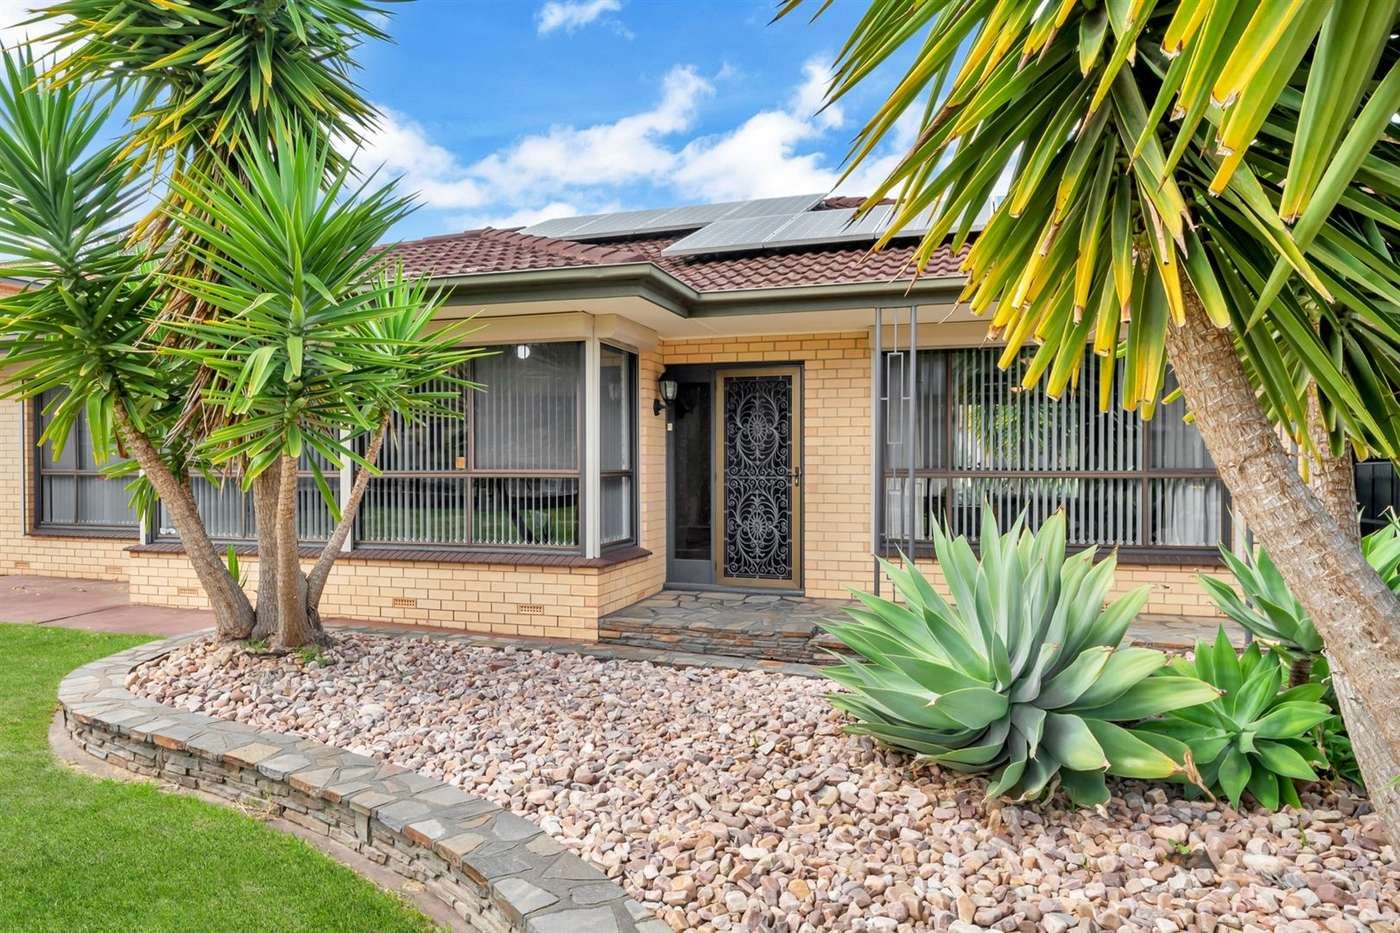 Main view of Homely house listing, 23 Mayfred Ave, Hope Valley, SA 5090